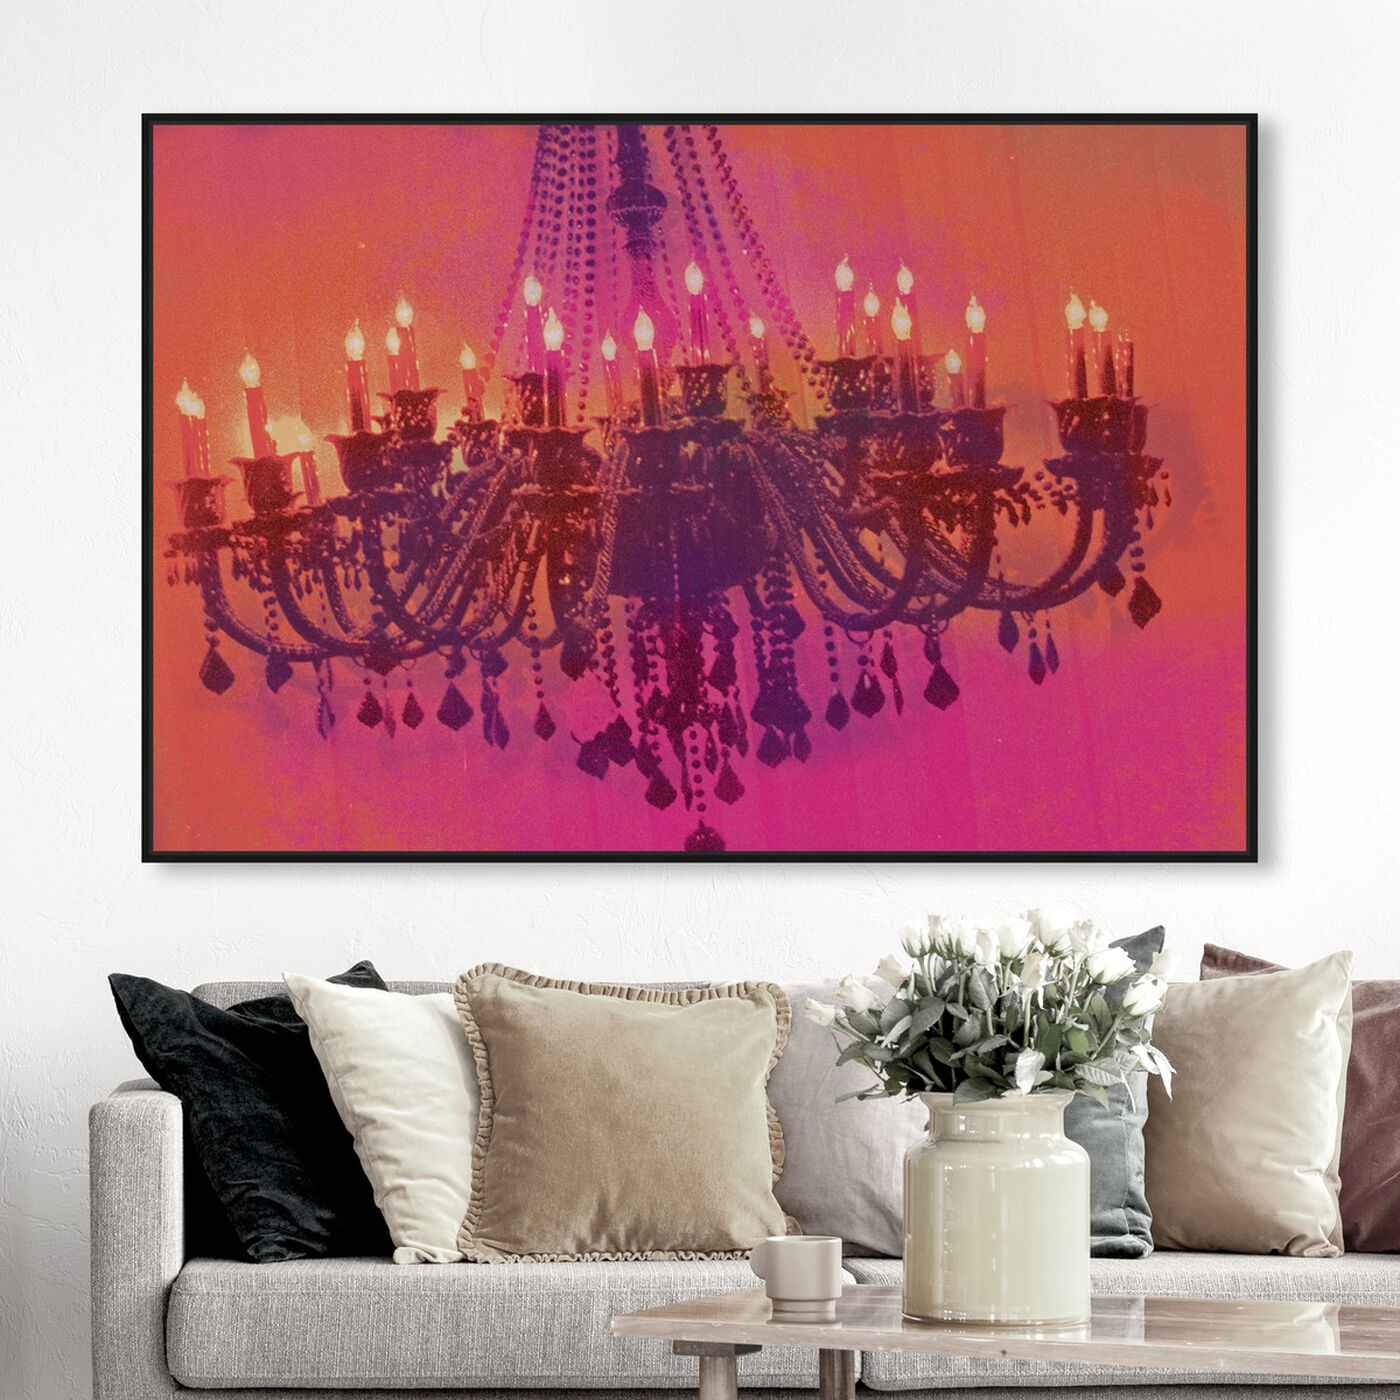 Hanging view of Light me up featuring fashion and glam and chandeliers art.